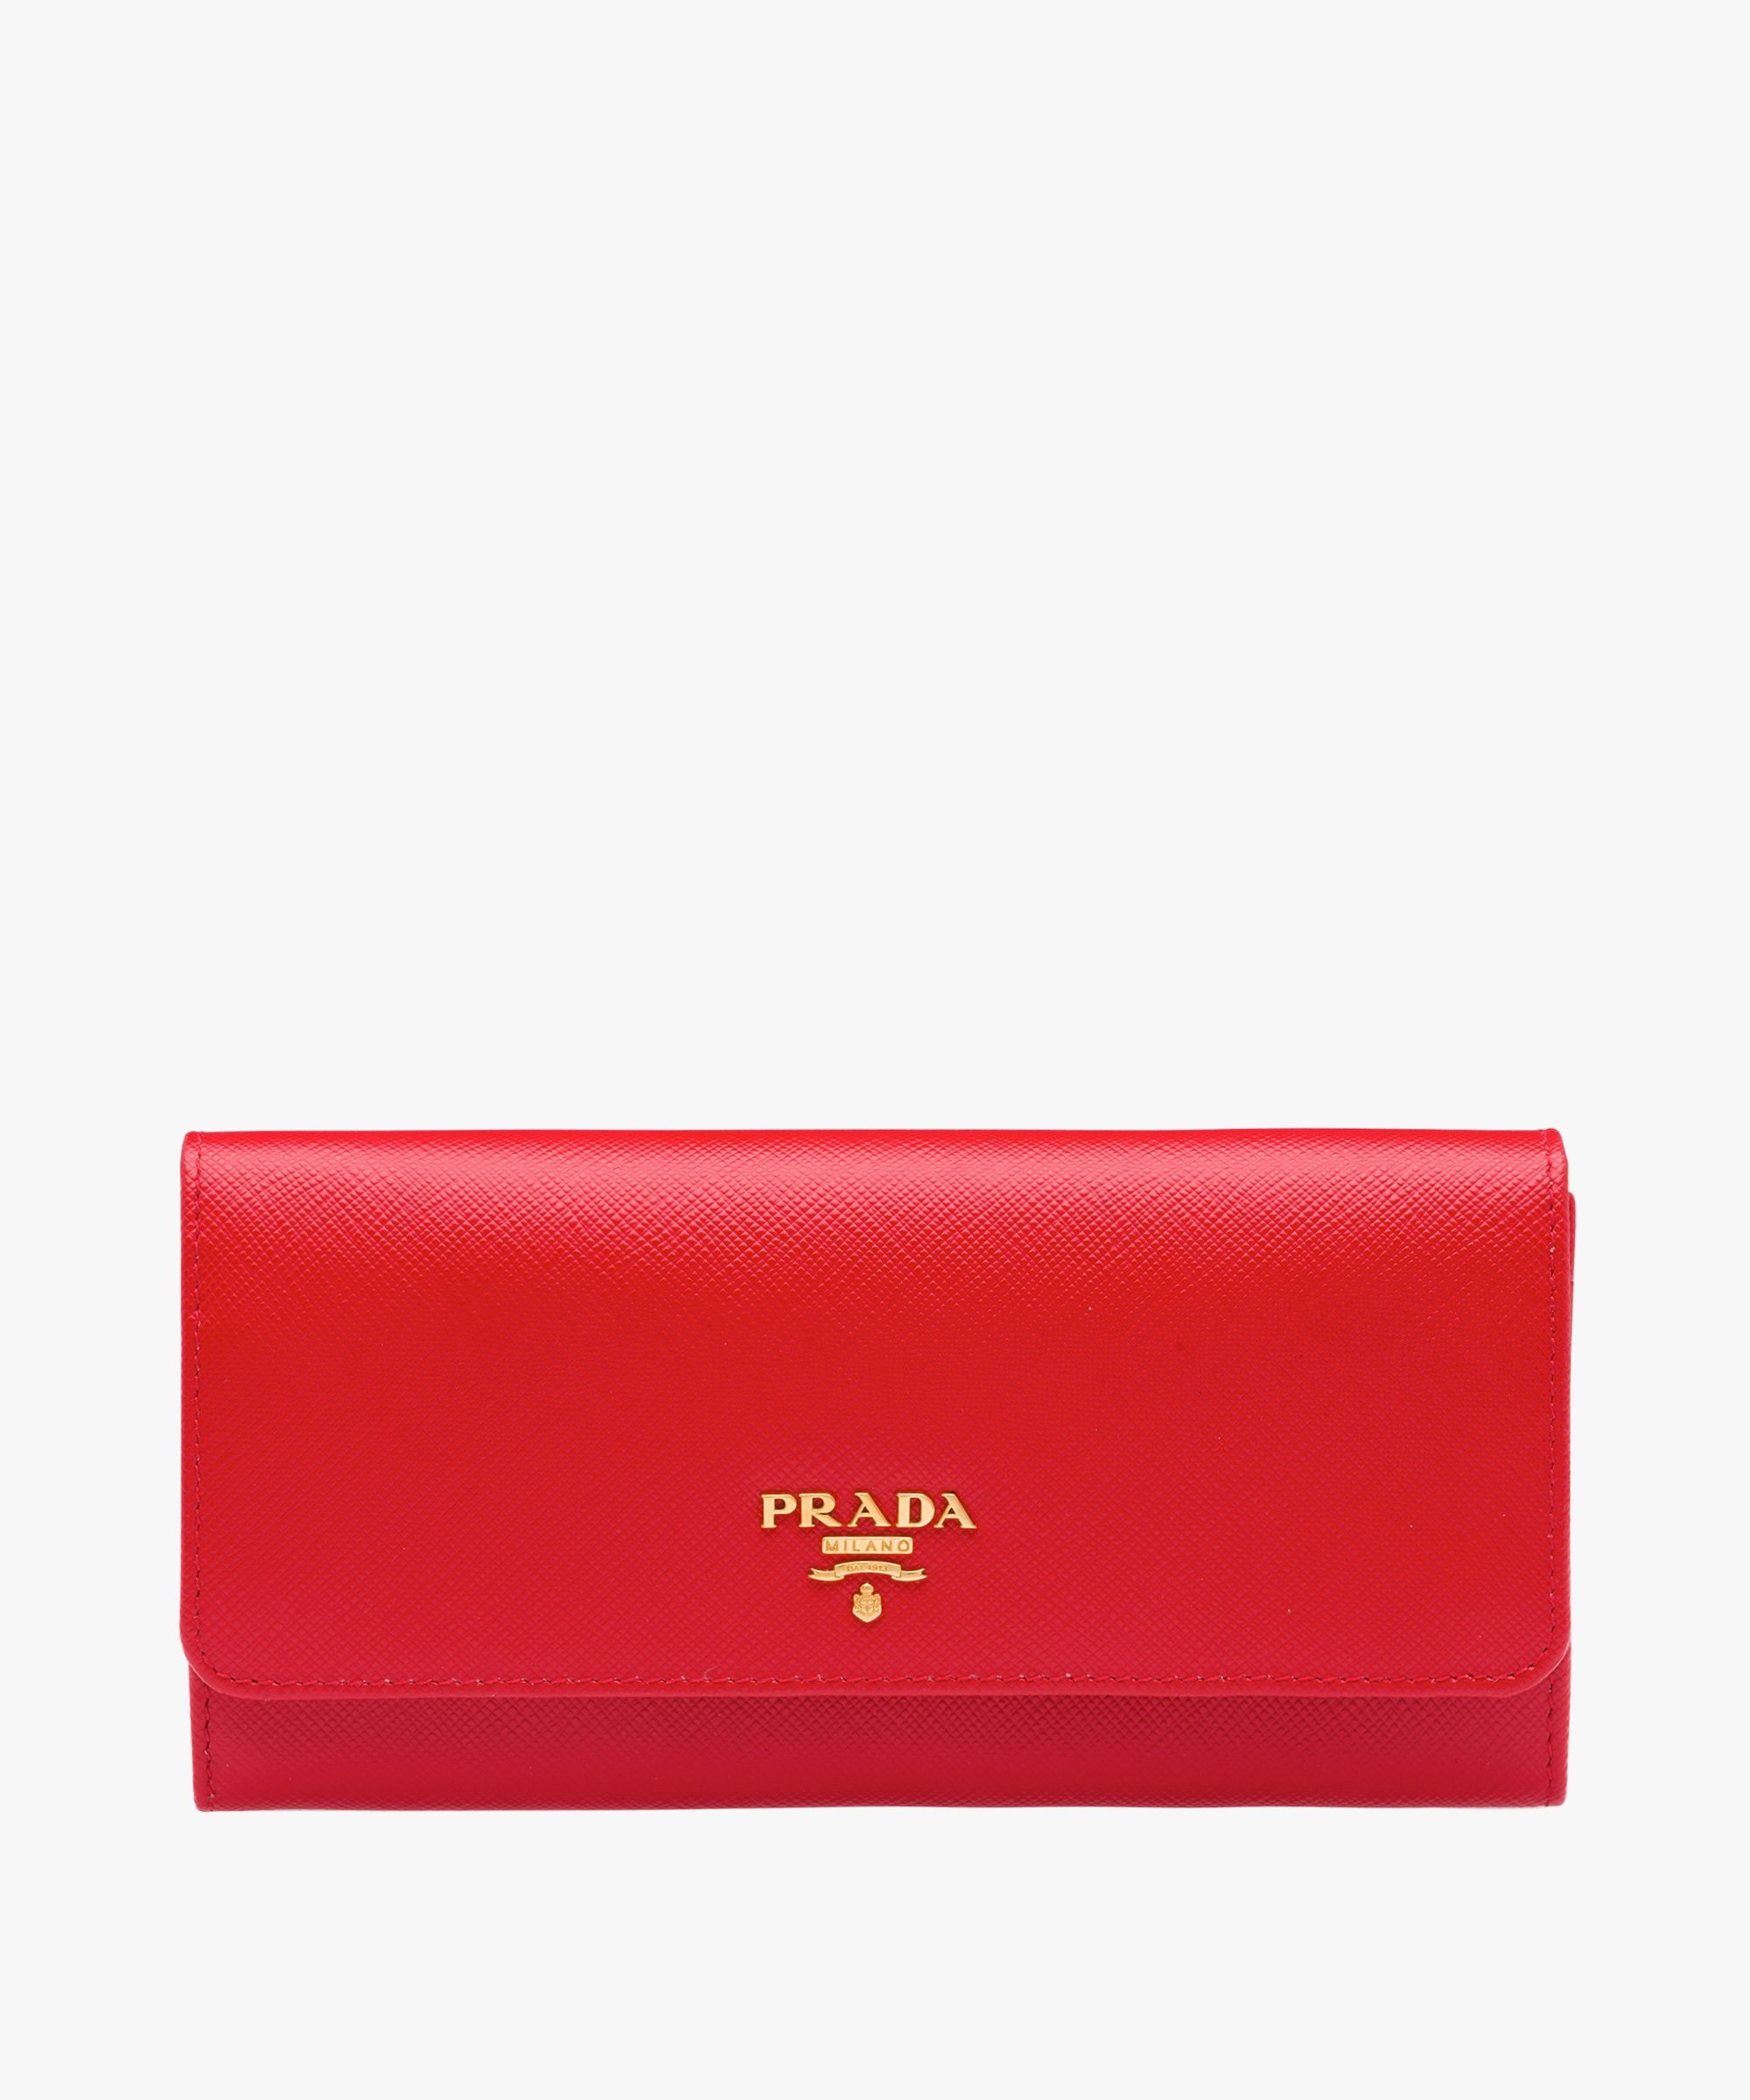 ●PRADA●冬新作♪Saffiano leather wallet♪2展開